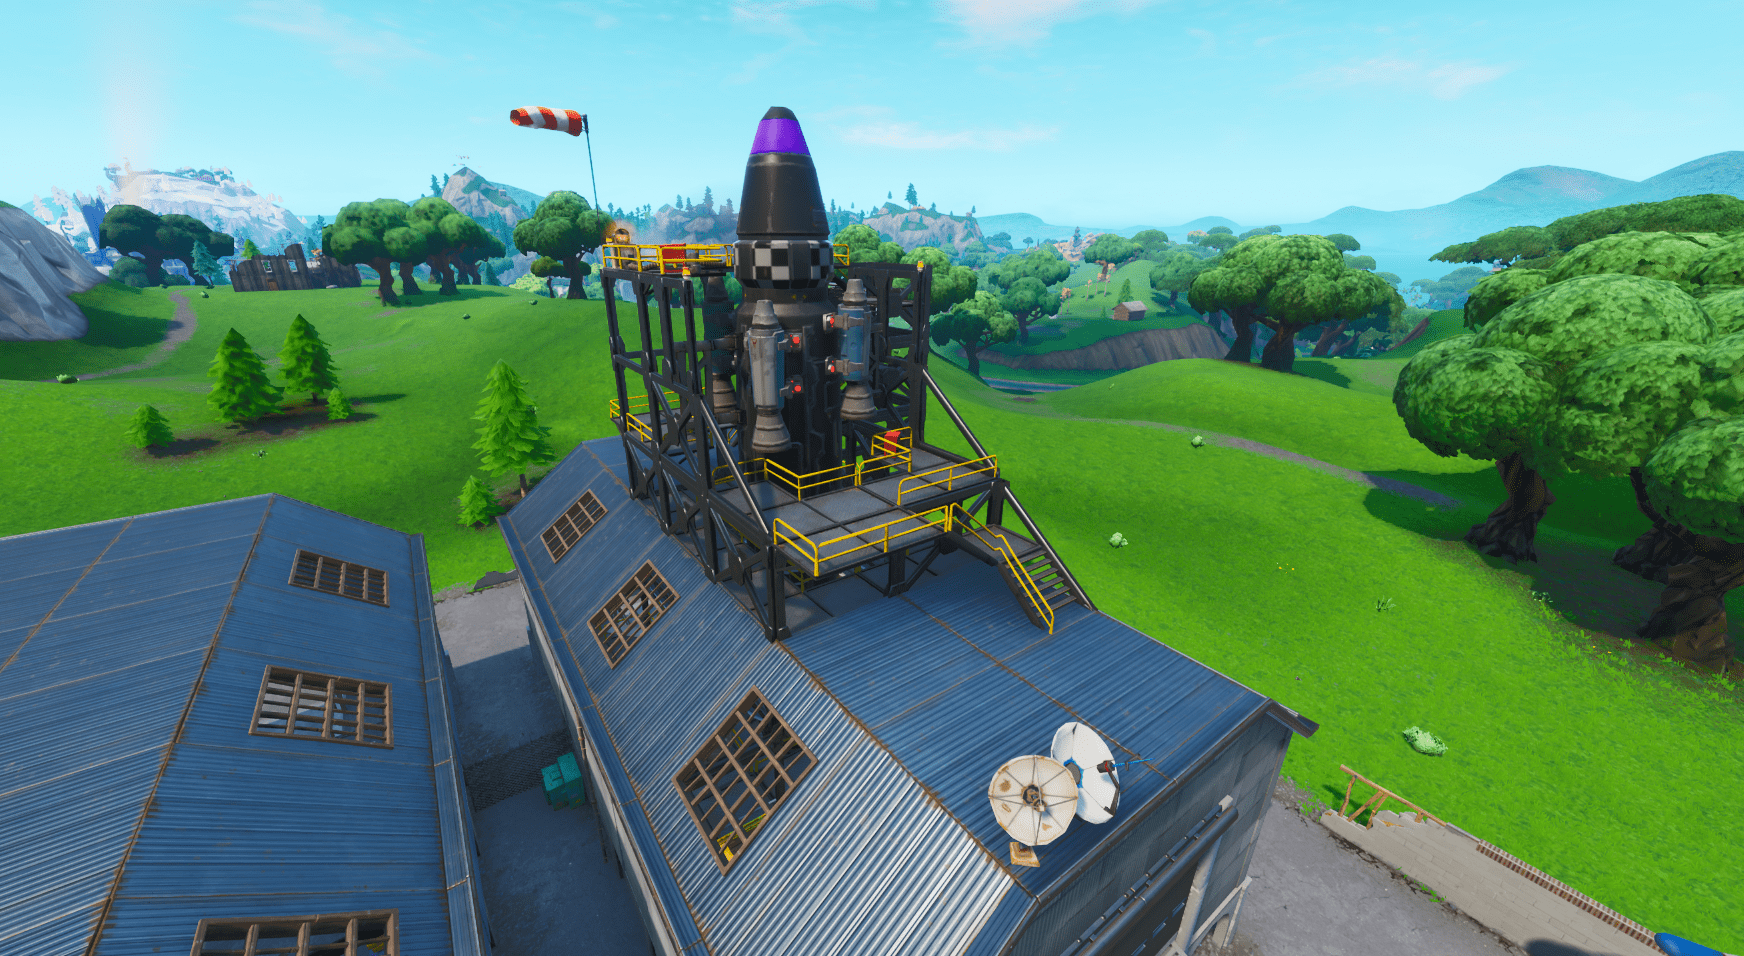 Fortnite S New Year S Eve Event Catches Some Players By Surprise Fortnite Nancy Drew Video Games